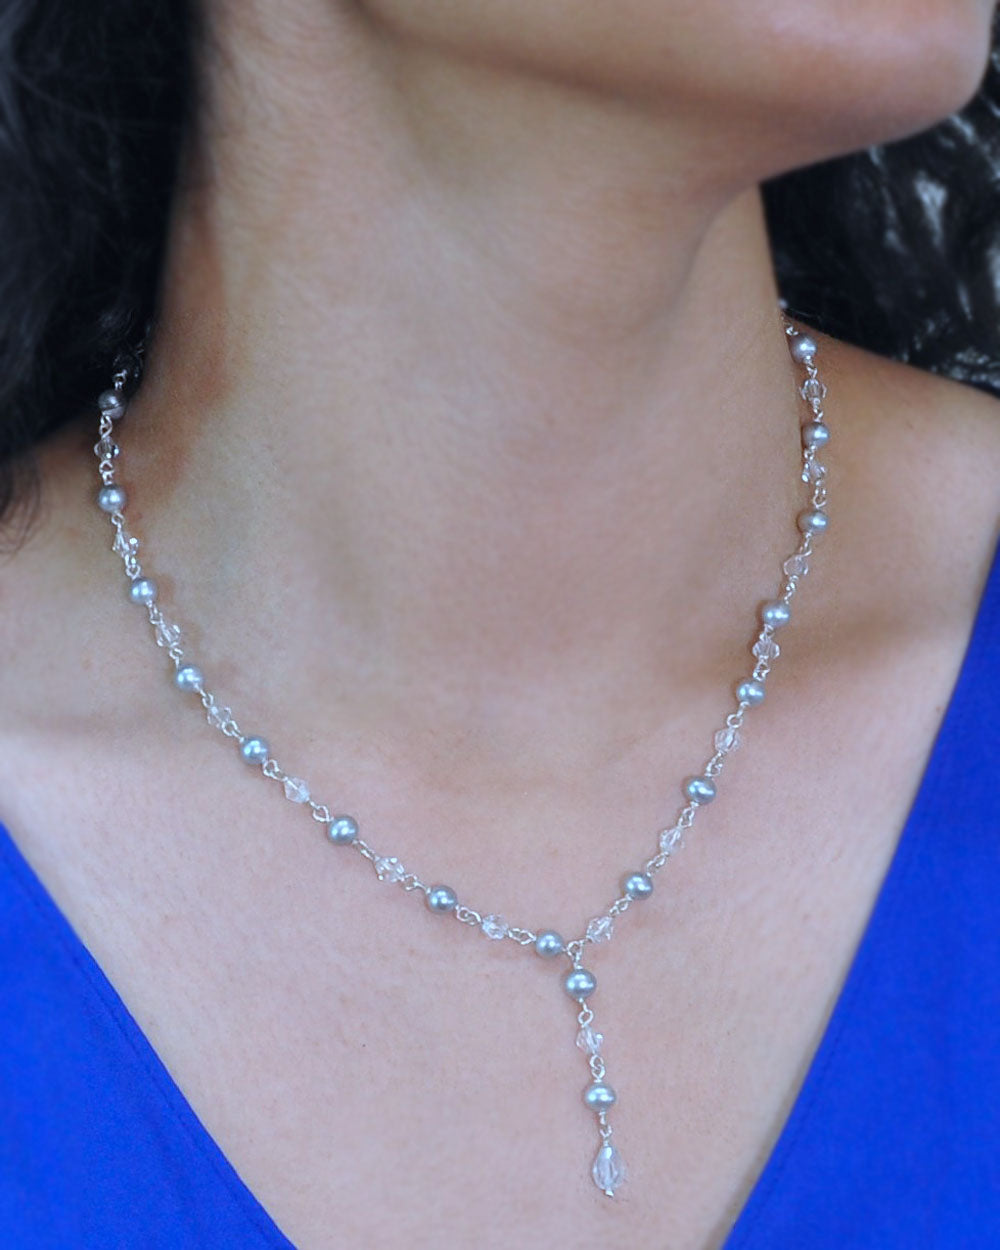 Sparkling Natural Gray Pearls and Crystals Necklace